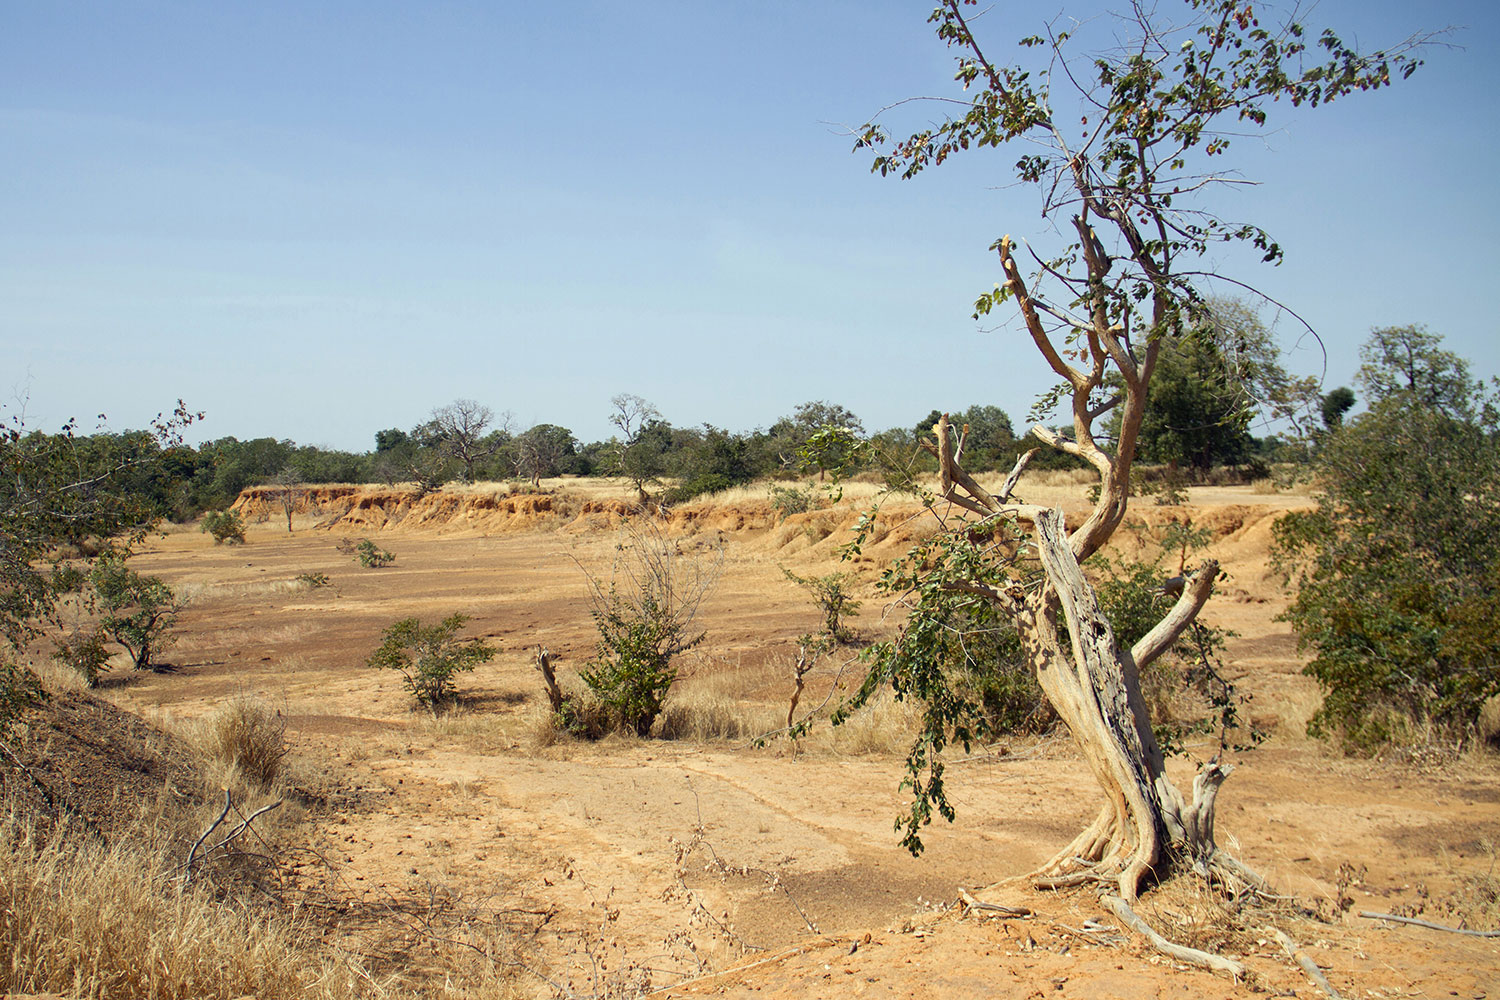 Parched land is pictured around the Lake Wegnia, in Sahel region of Koulikoro, Mali on November 22, 2019. Picture Shows a lonely tree, small and scrubby with many of its branches dead. It's in a dry gully with a few other green scrubby bushes scattered in the frame—but mostly nothing but dry yellow dirt and sand everywhere the eye can see off into the distance. REUTERS/Arouna Sissoko